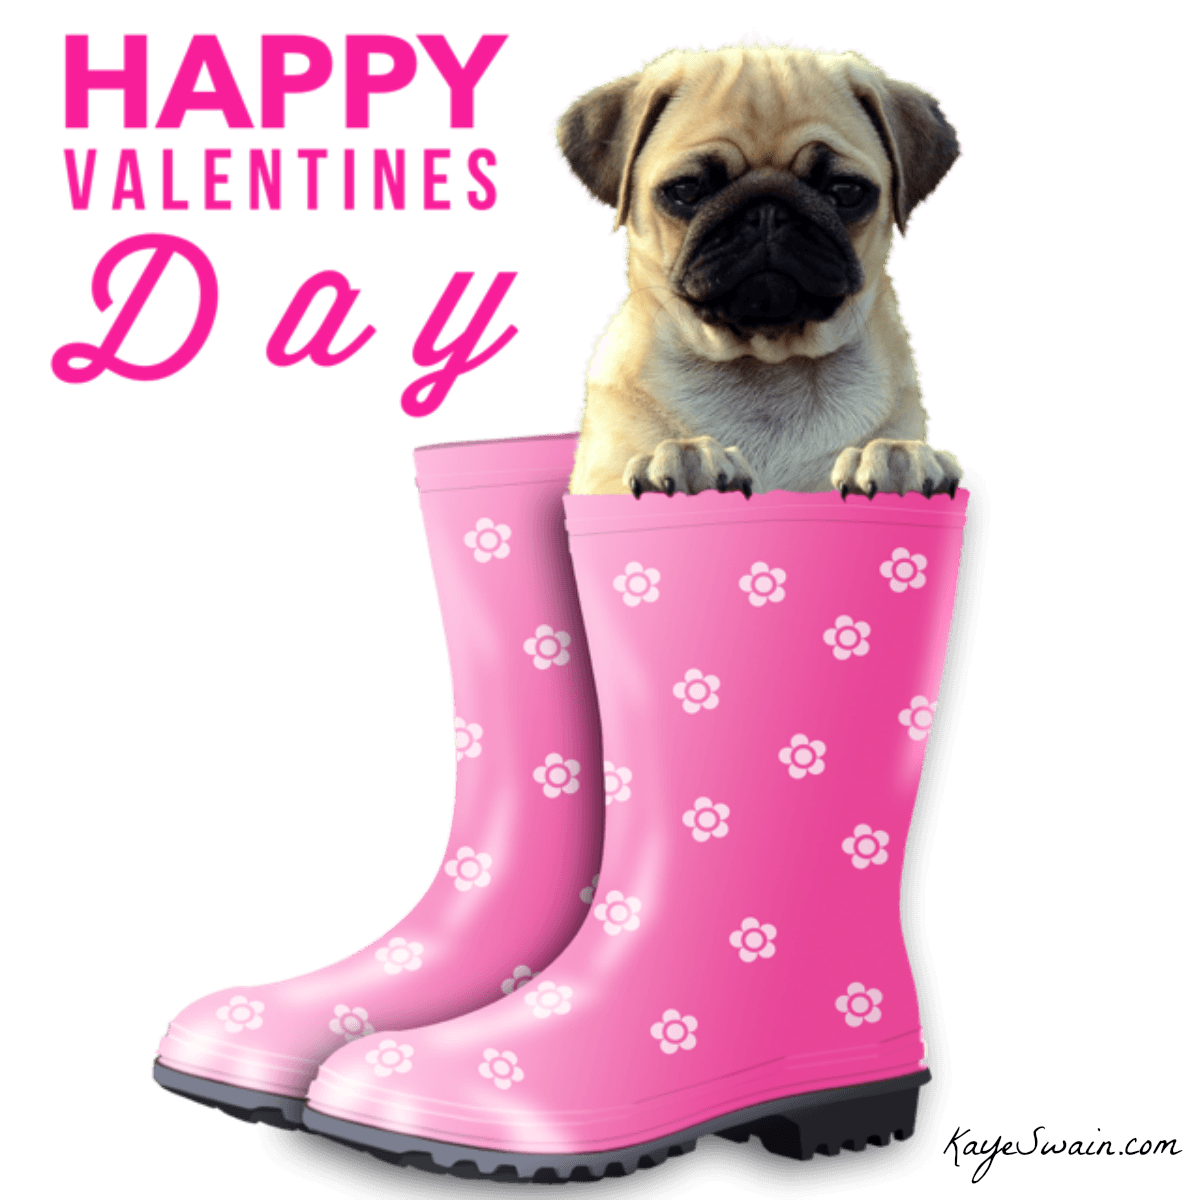 Valentines day ideas for at home and out and about - Valentines day pictures with puppies ...